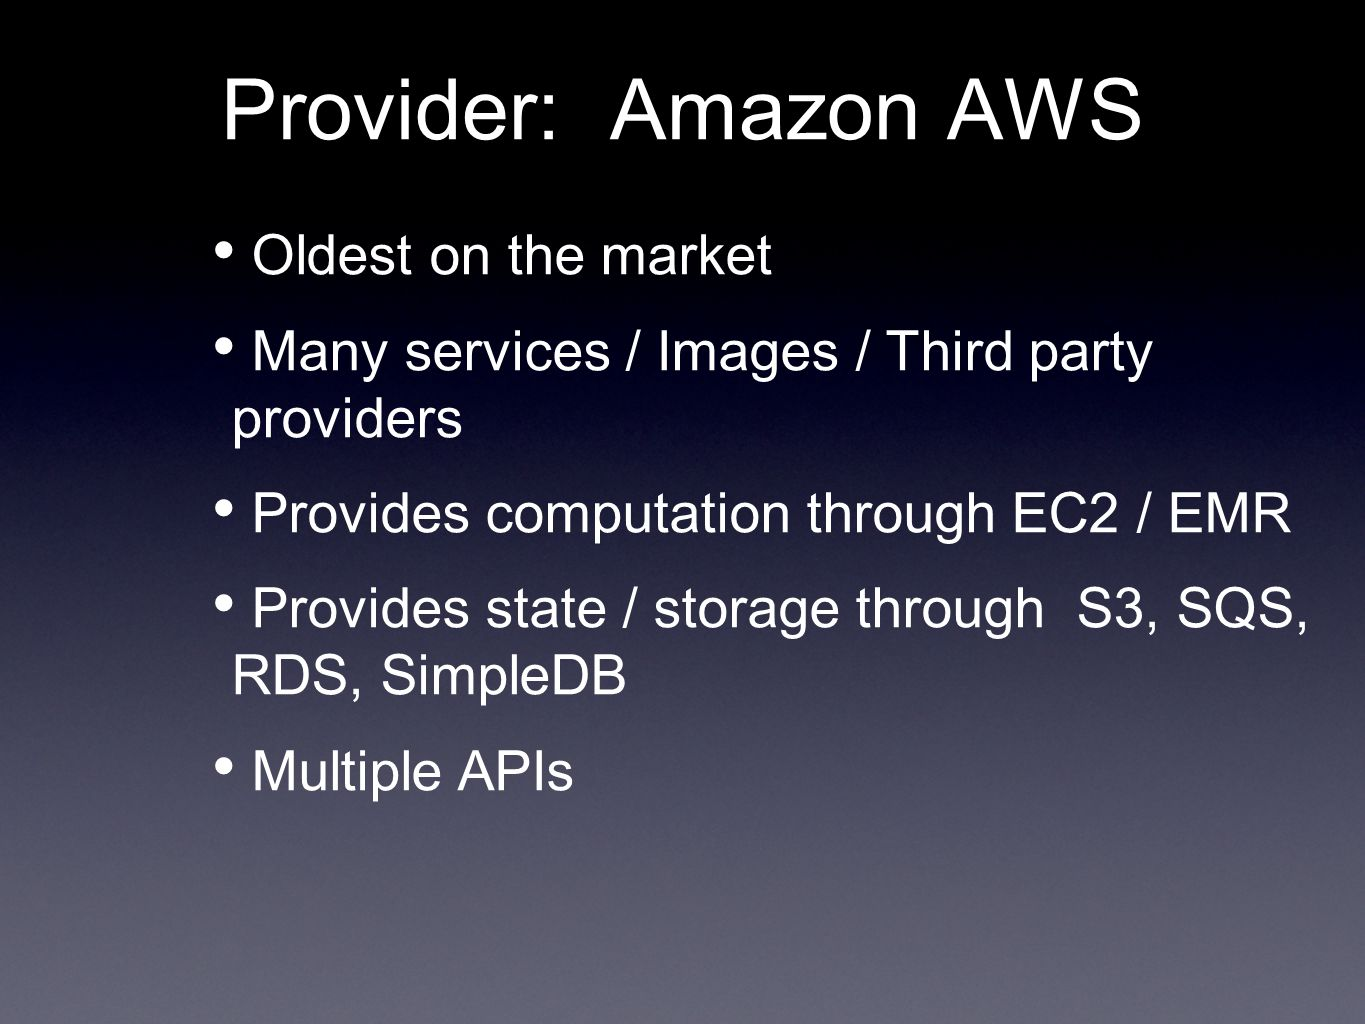 Provider: Amazon AWS Oldest on the market Many services / Images / Third party providers Provides computation through EC2 / EMR Provides state / storage through S3, SQS, RDS, SimpleDB Multiple APIs